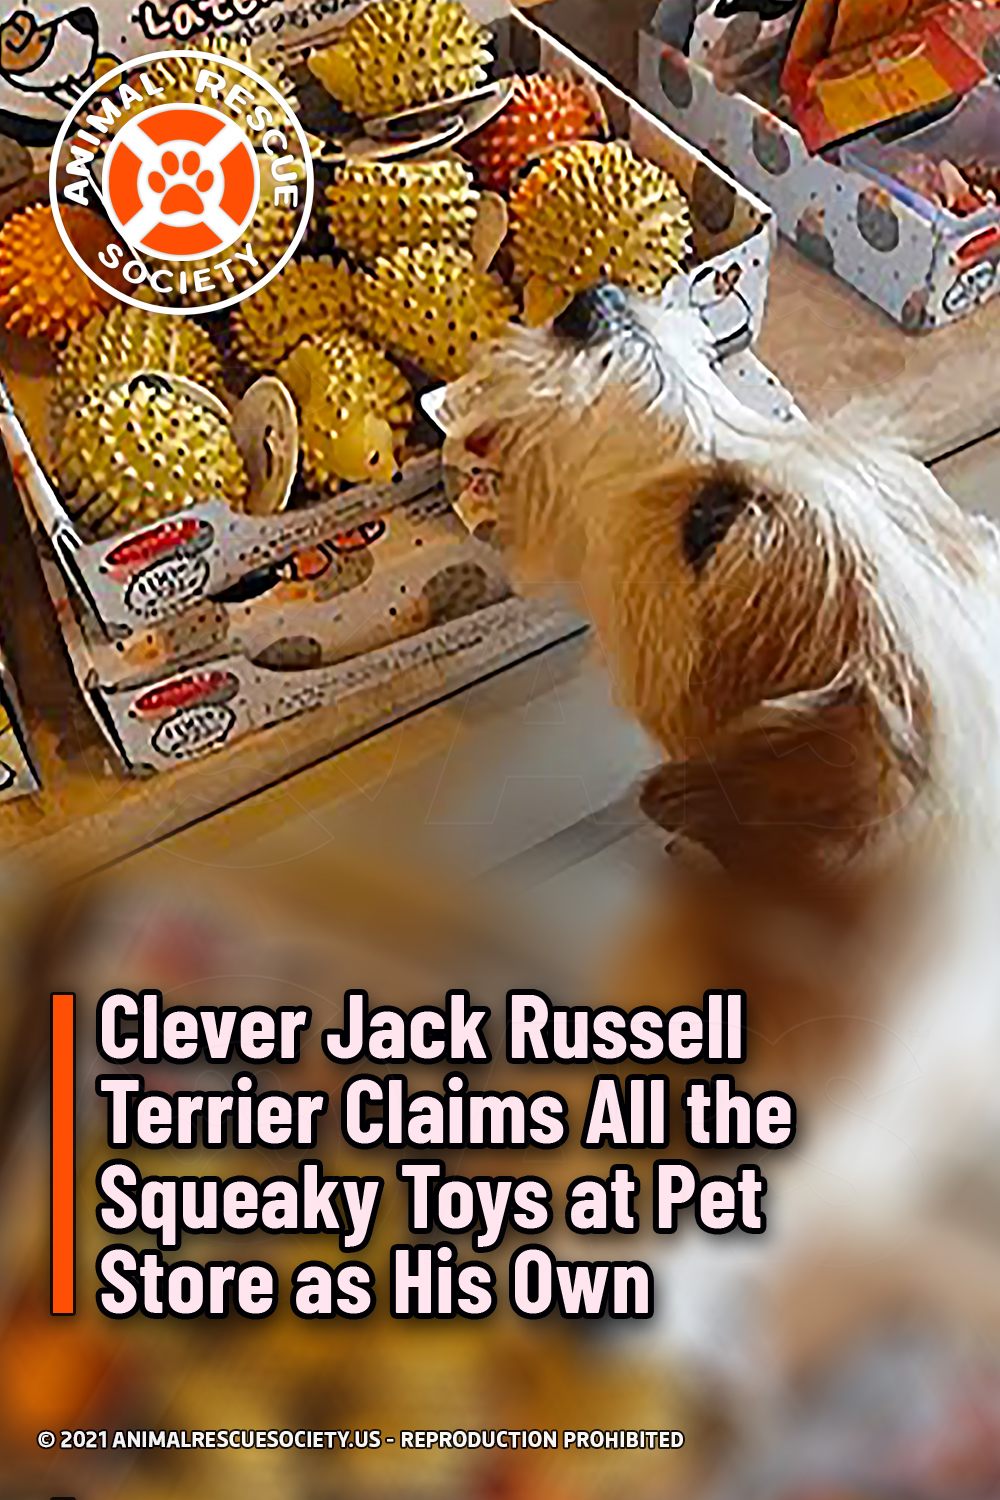 Clever Jack Russell Terrier Claims All the Squeaky Toys at Pet Store as His Own